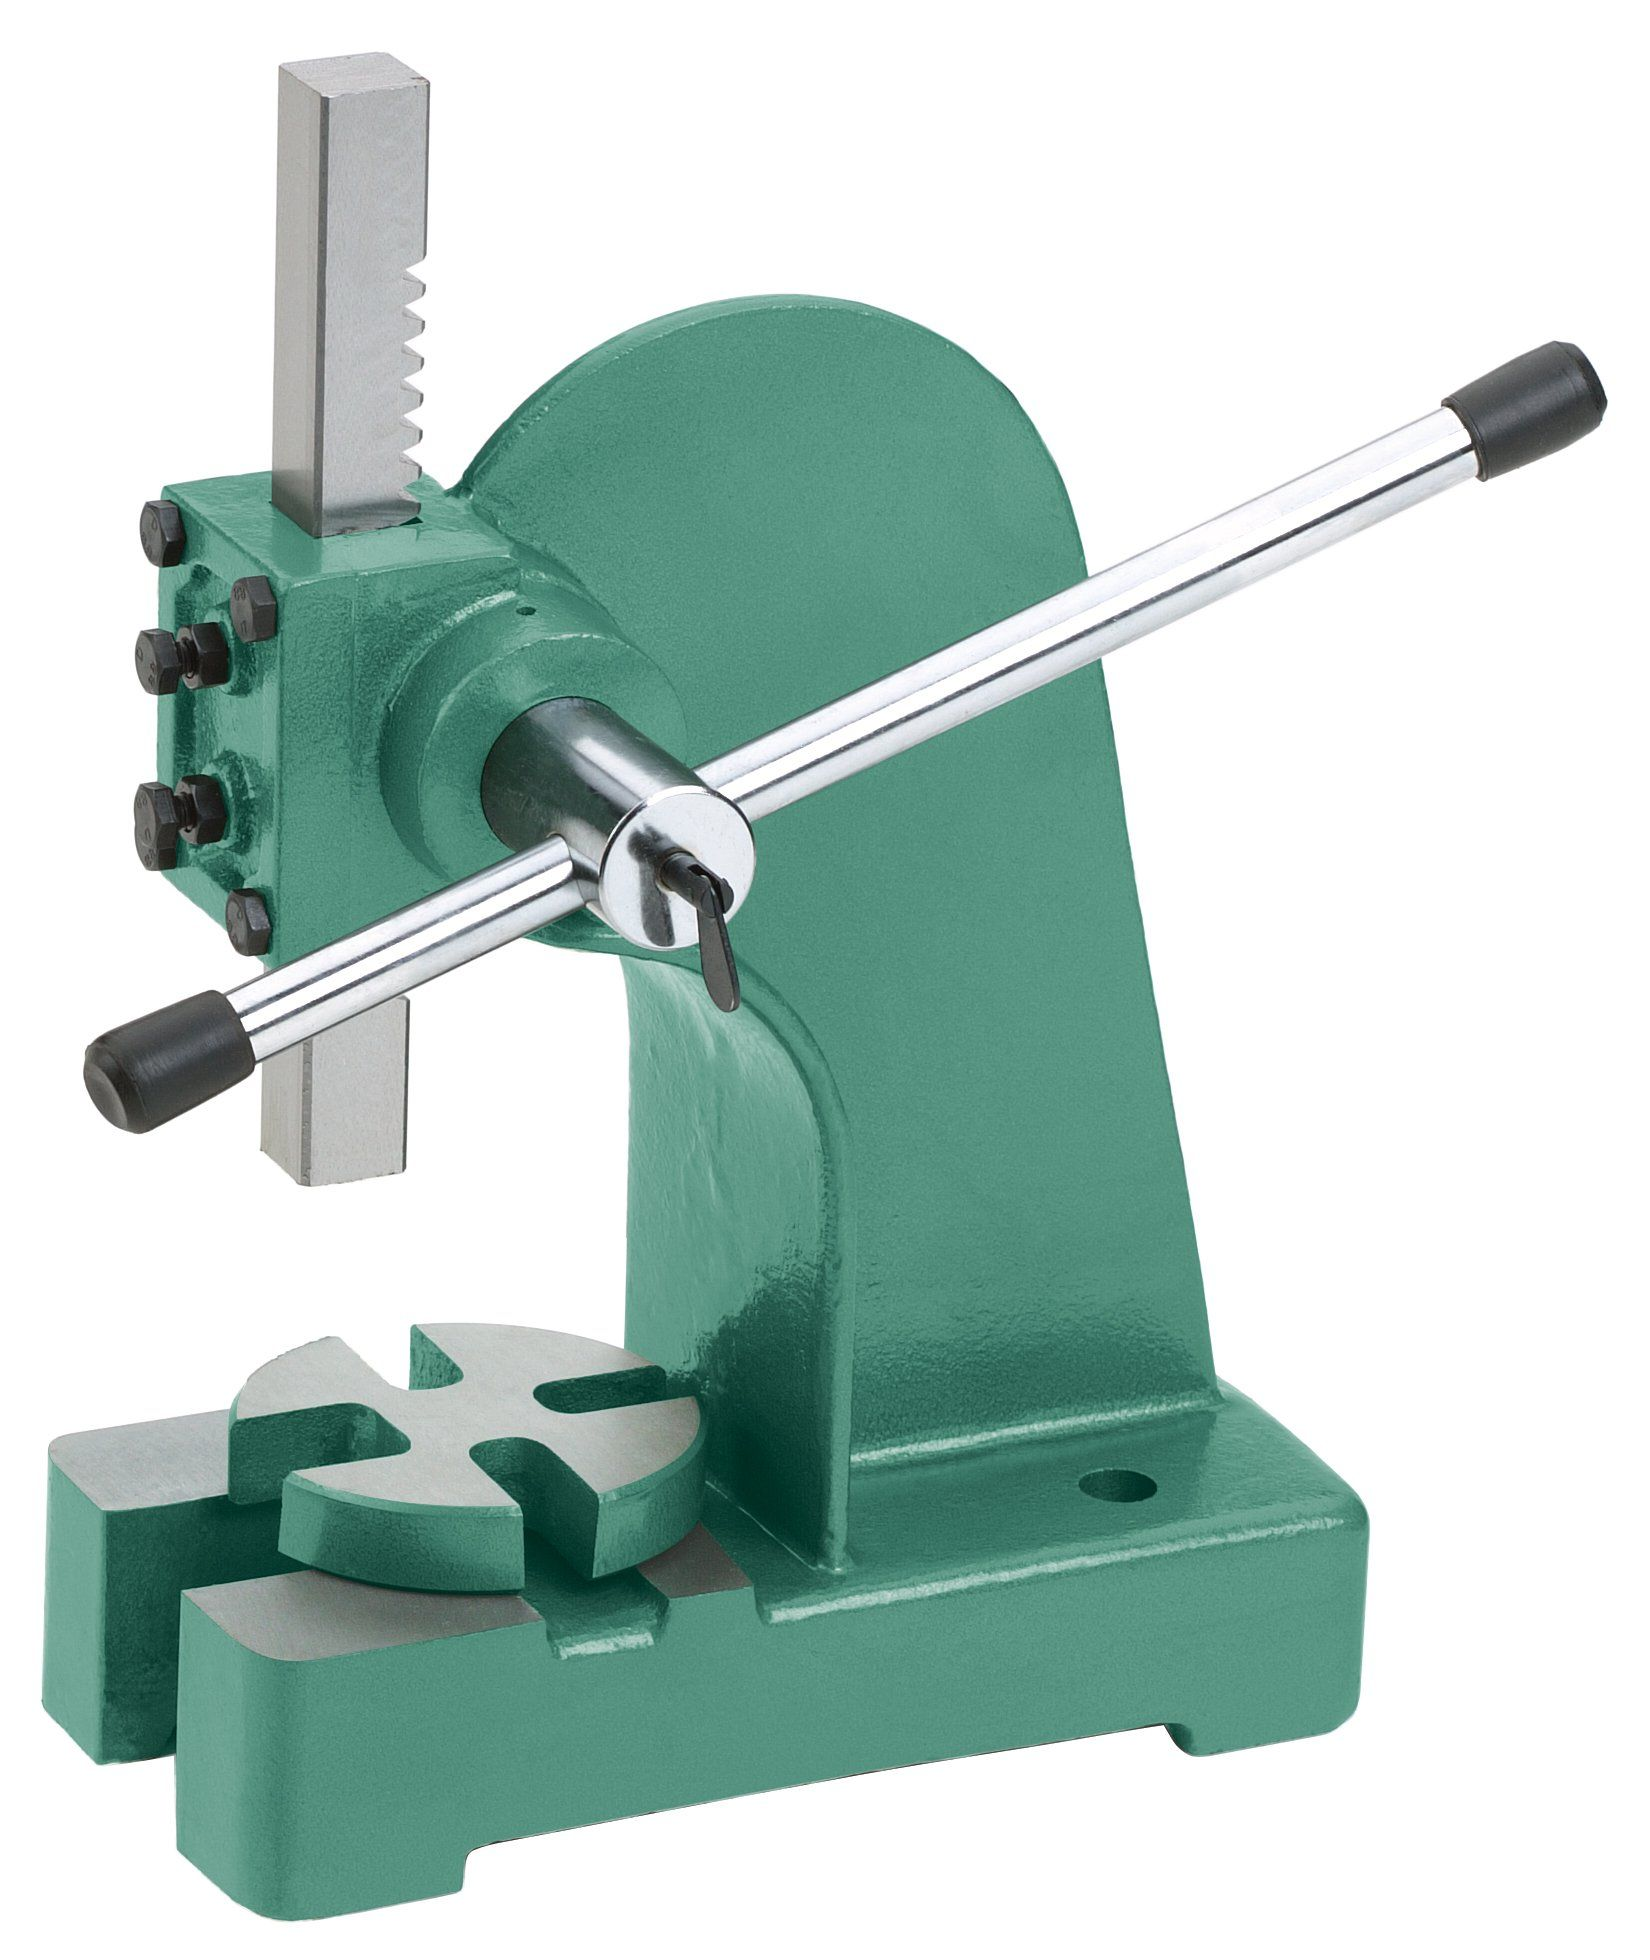 Grizzly G4018 Arbor Press, 1 Ton | Coin Ring Tools | Pinterest ...